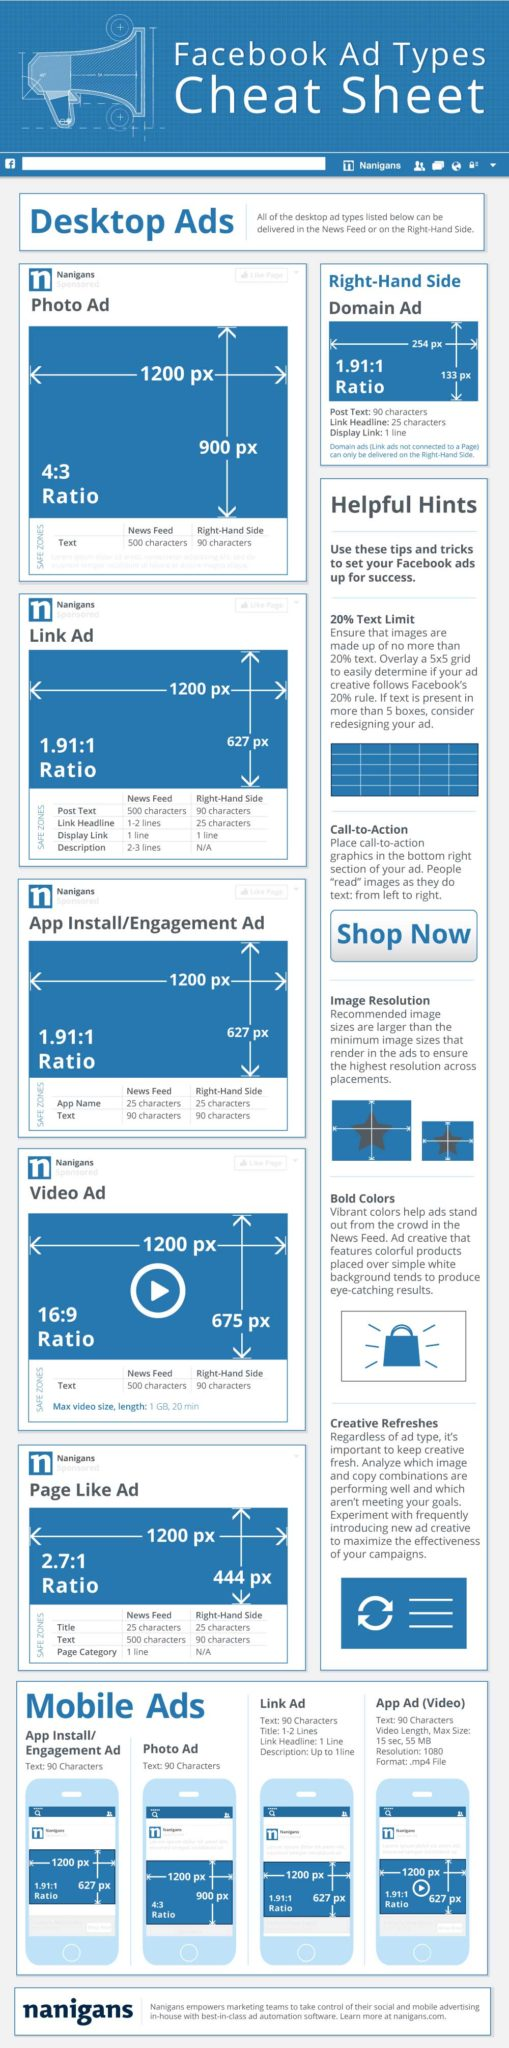 facebook advertising graphics cheat sheet